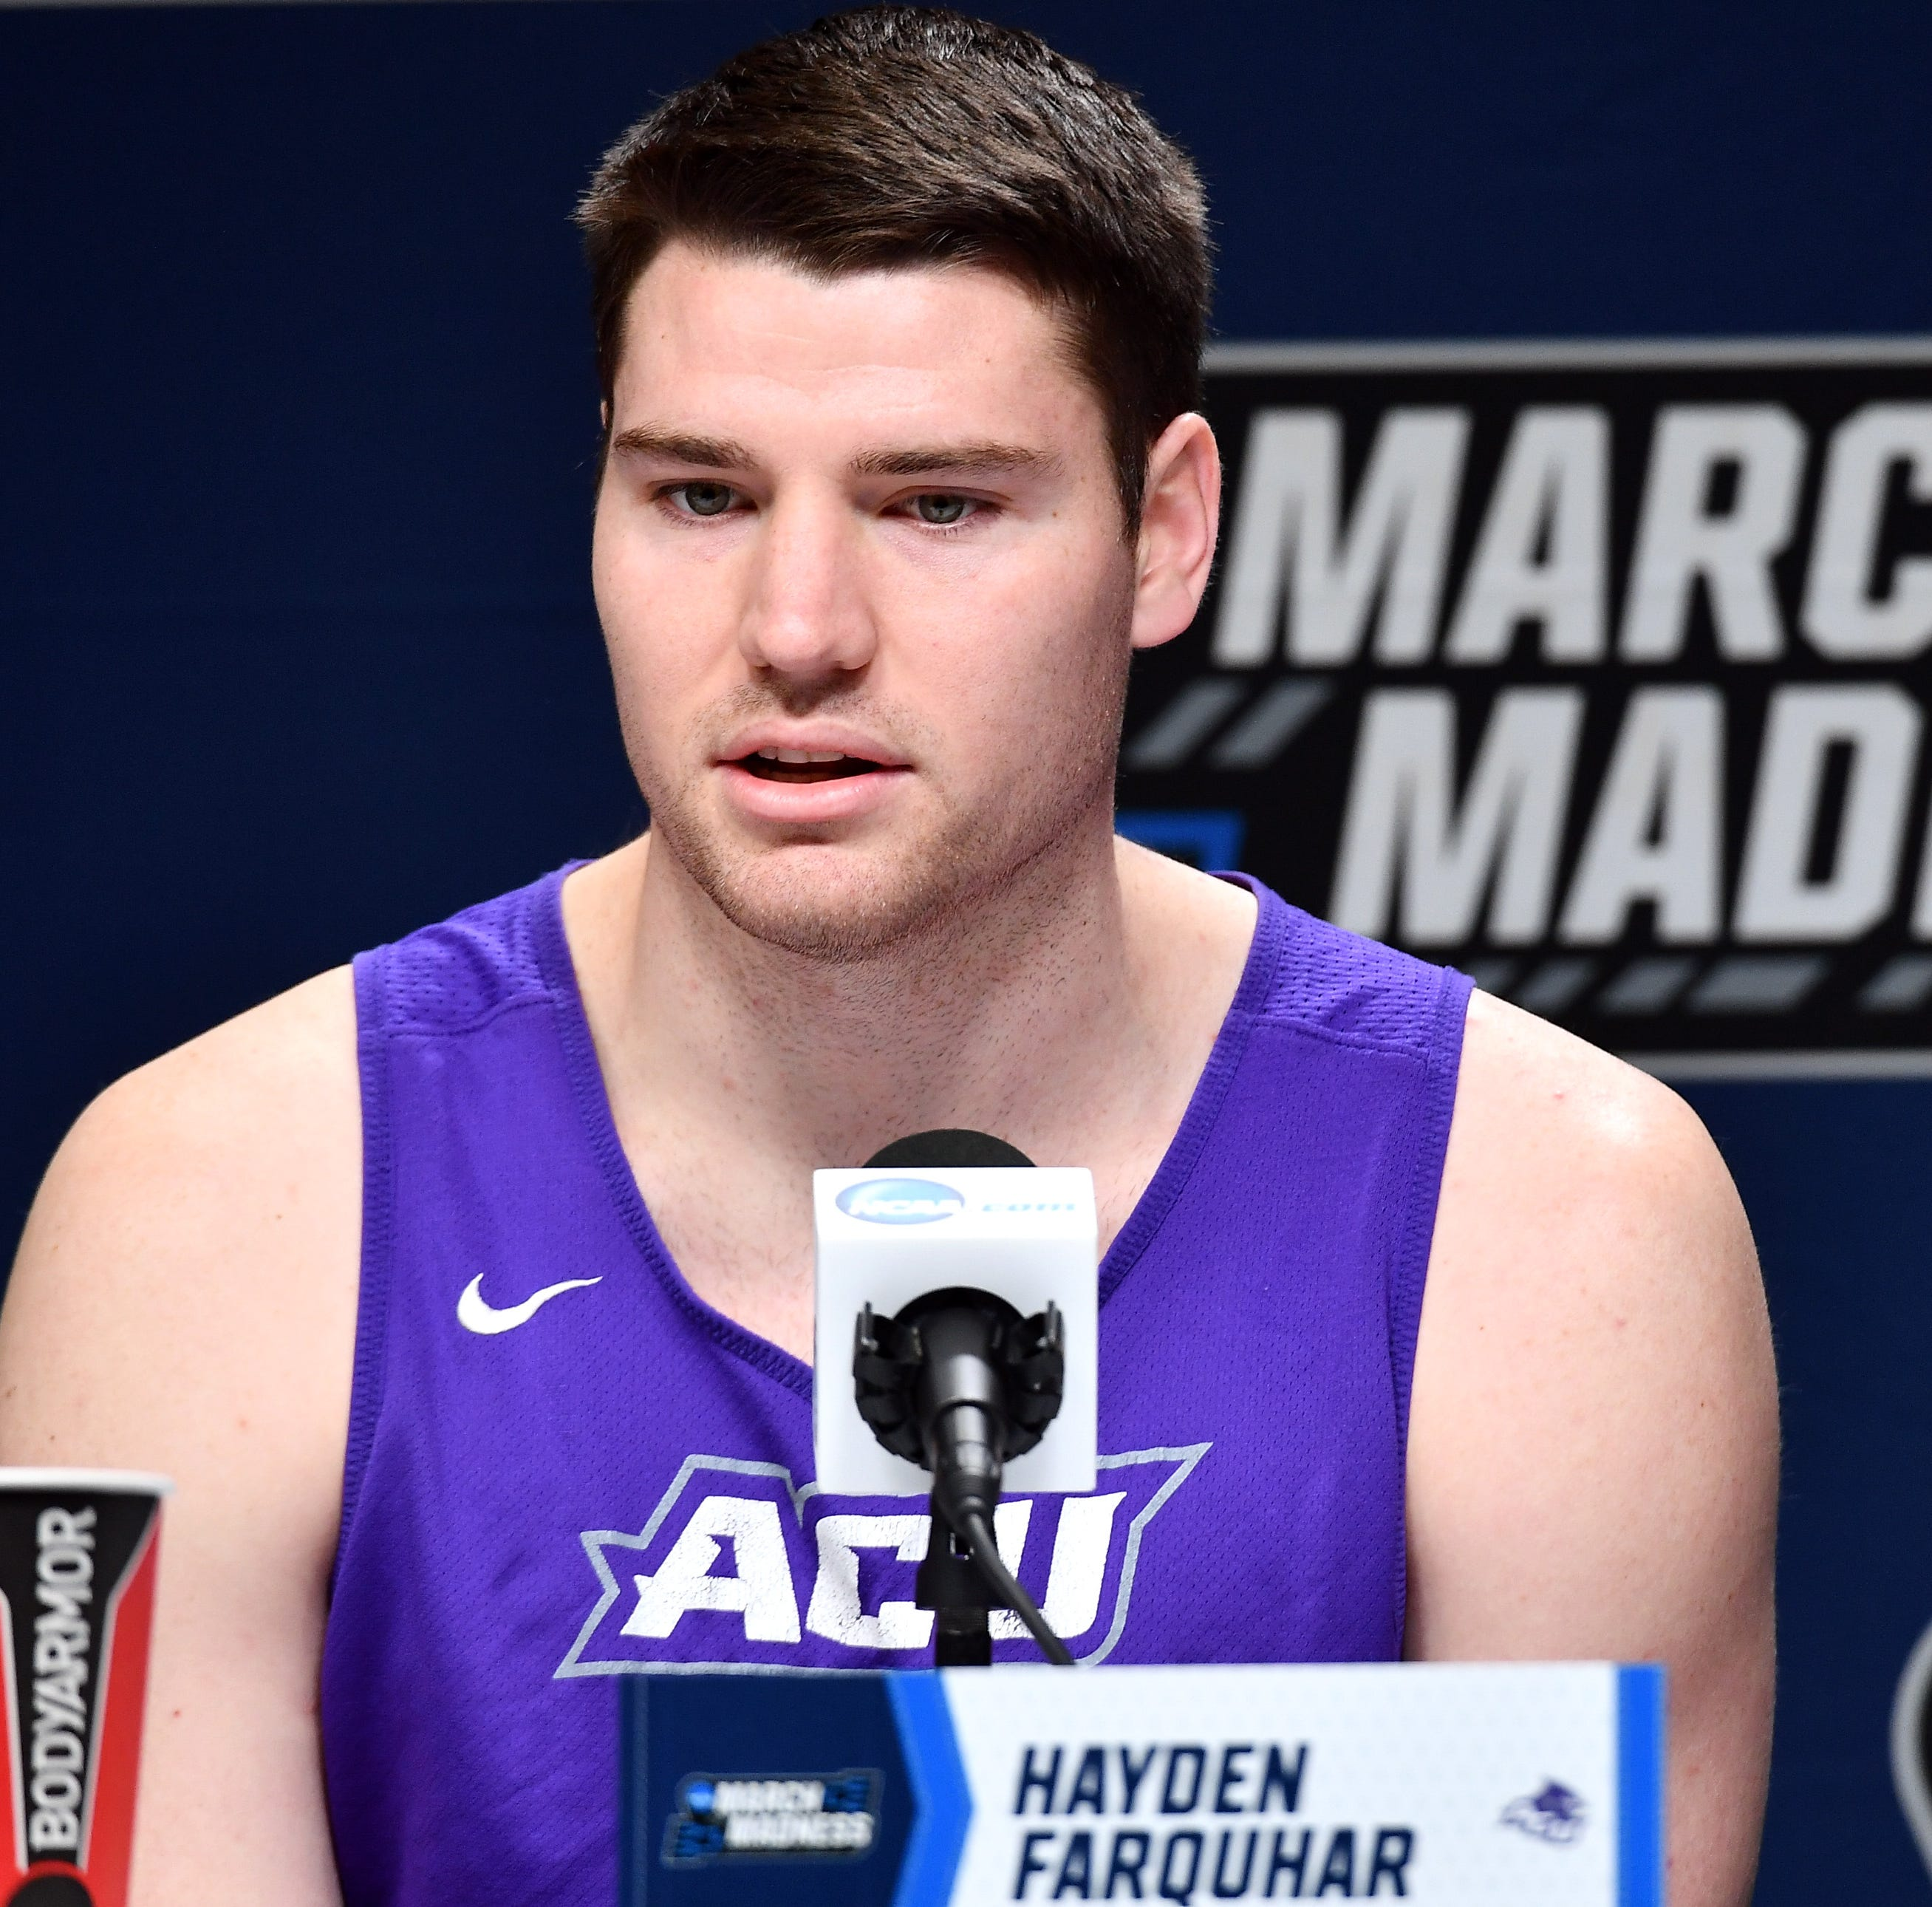 Abilene Christian's Hayden Farquhar's name sounds like Shrek's Lord Farquaad, Twitter says